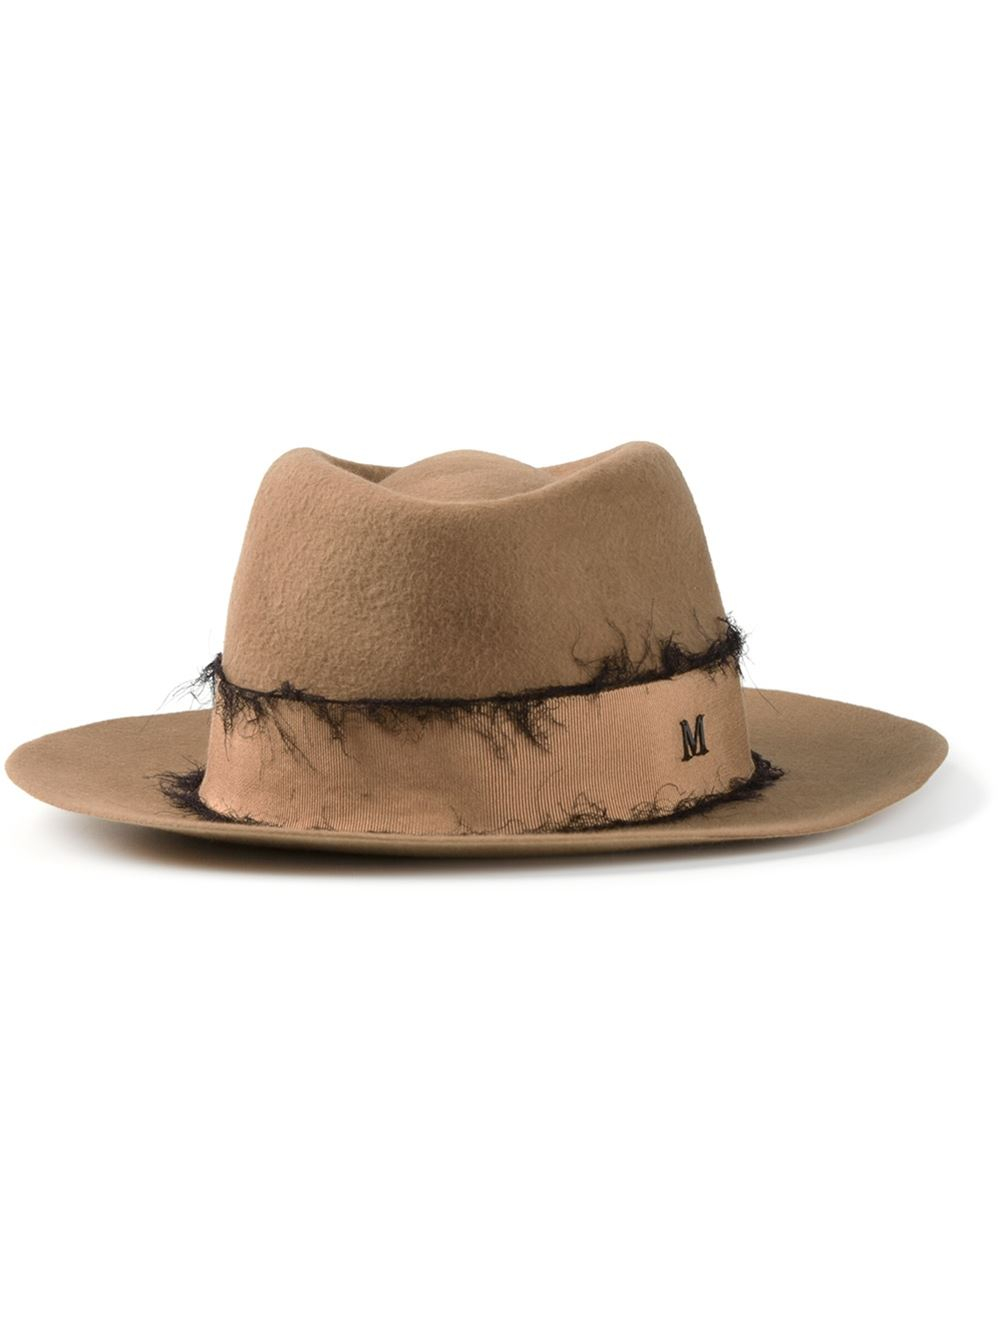 Lyst maison michel andre hat in brown for Maison michel